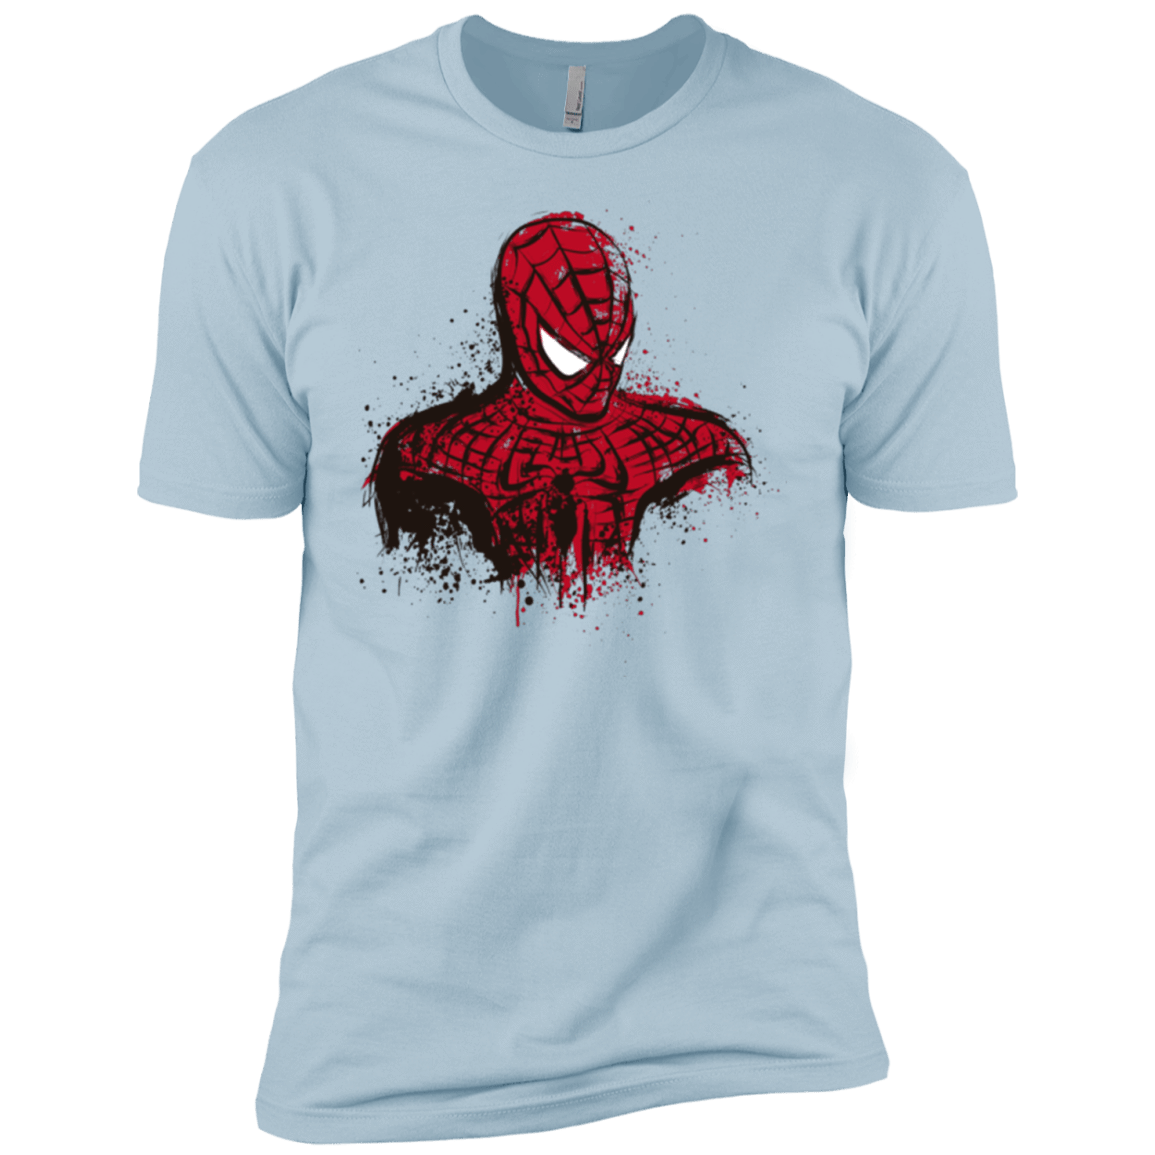 Behind The Mask Boys Premium T-Shirt